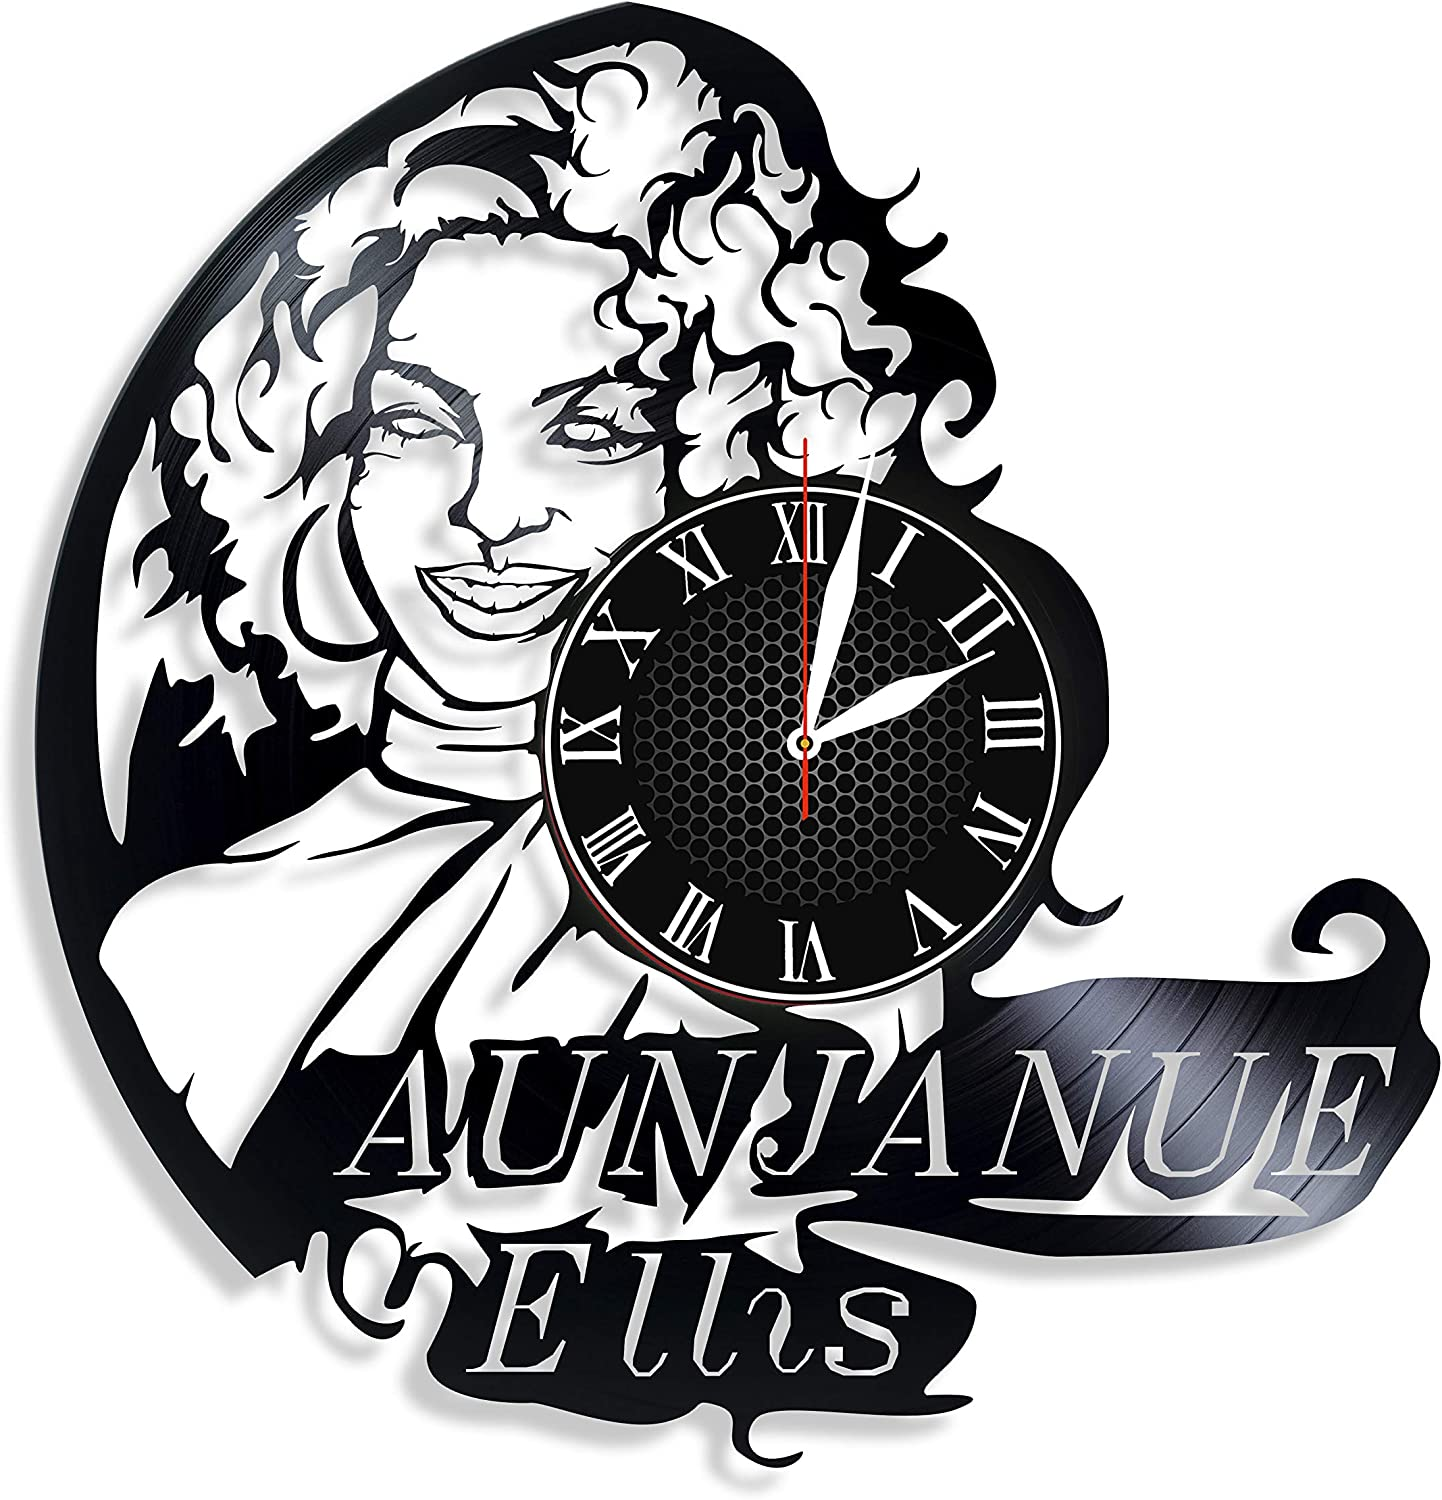 Amazon Com Aunjanue Ellis Actor Handmade Vinyl Wall Clock Get Unique Gifts Presents For Birthday Christmas Ideas For Boys Girls Men Women Adults Him And Her Sport Unique Design Home